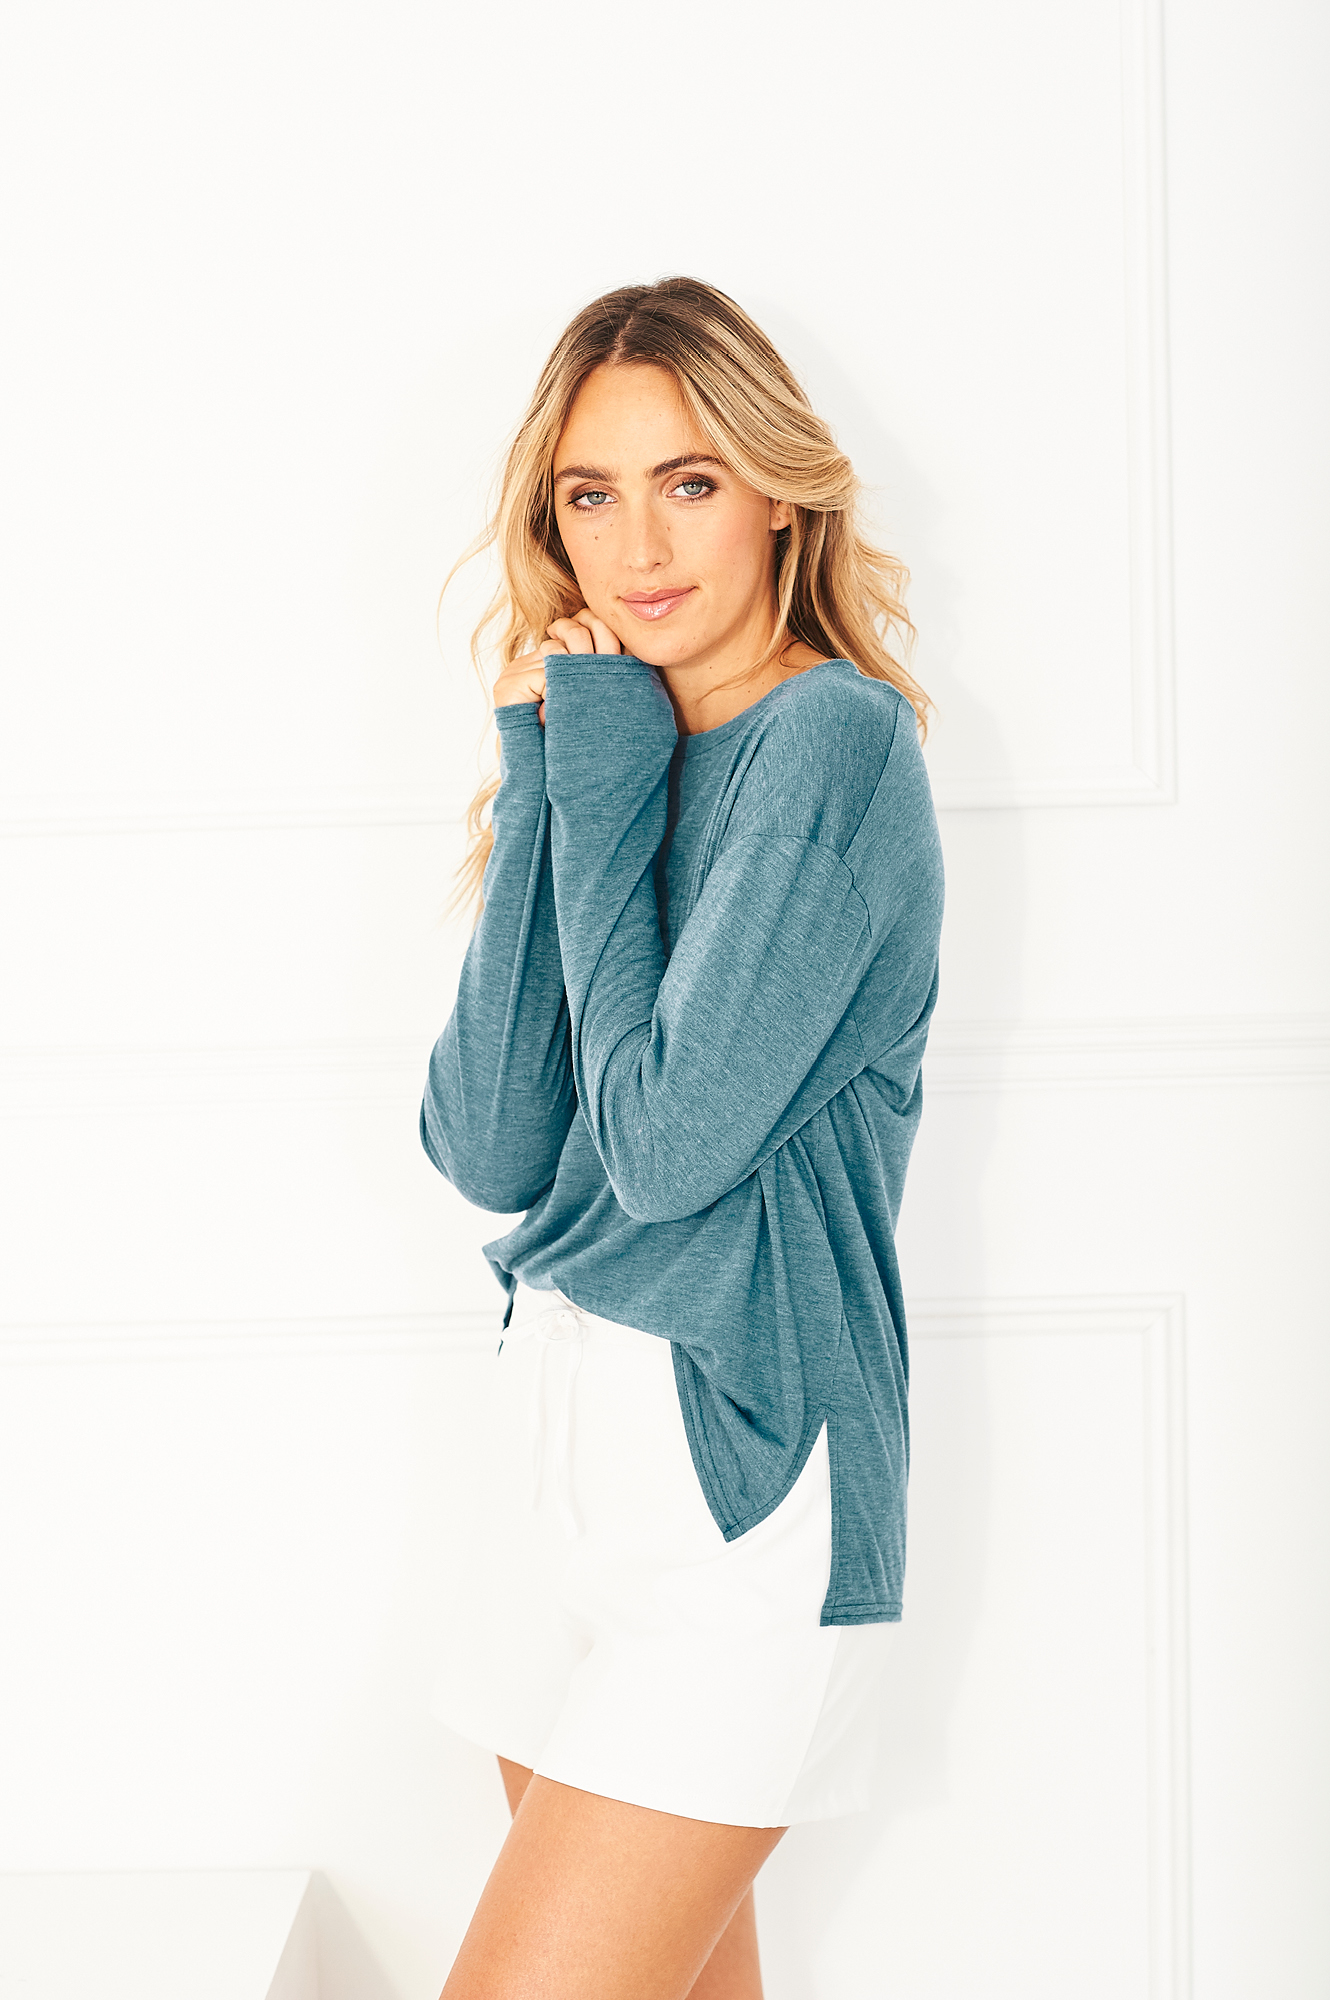 The Cucumber Pacific Blue Oversize tee is another of Eileen's favourites